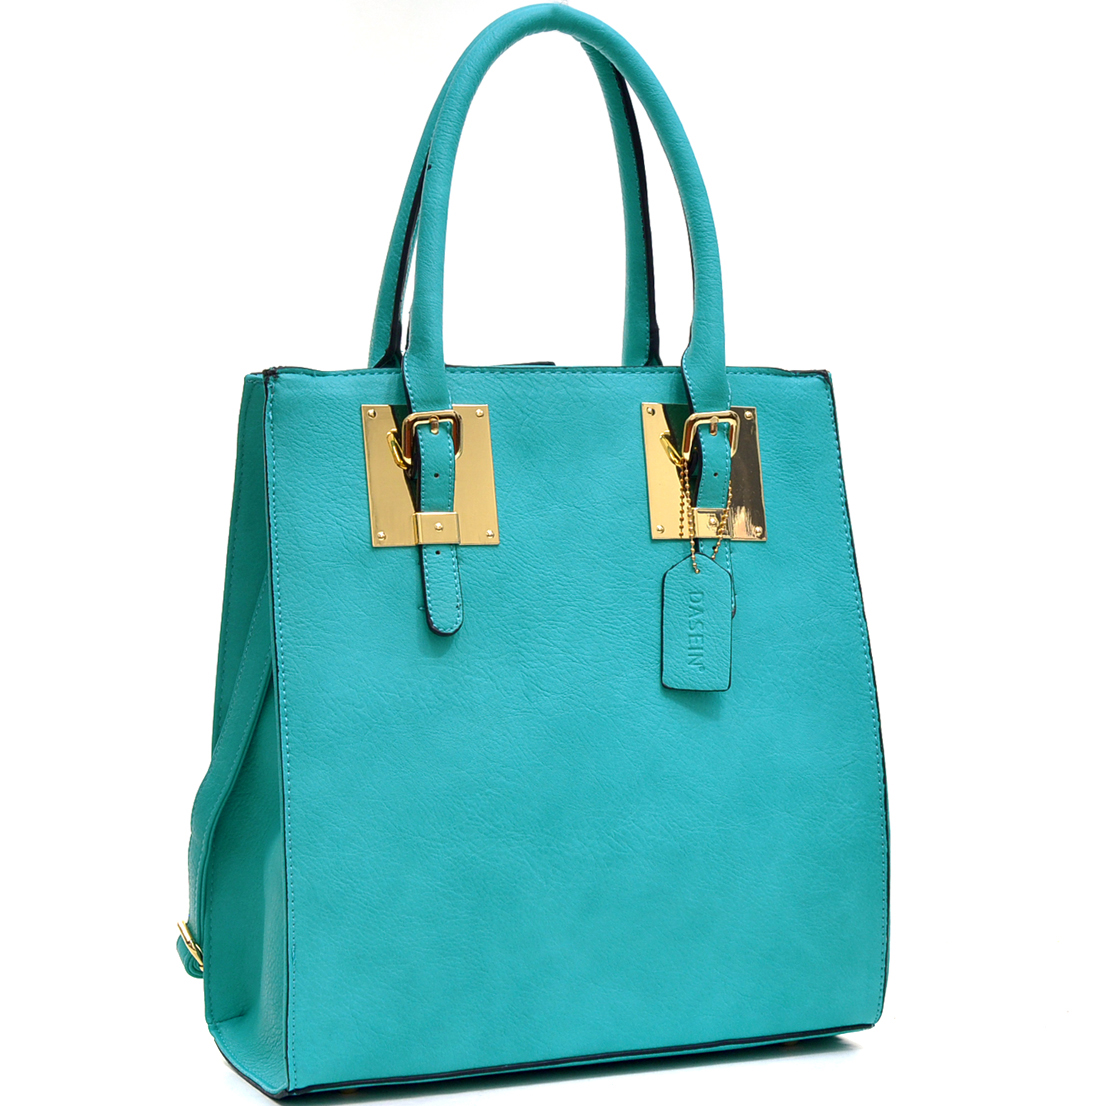 Structured Faux Leather Tote Bag with Gold-Tone Accent